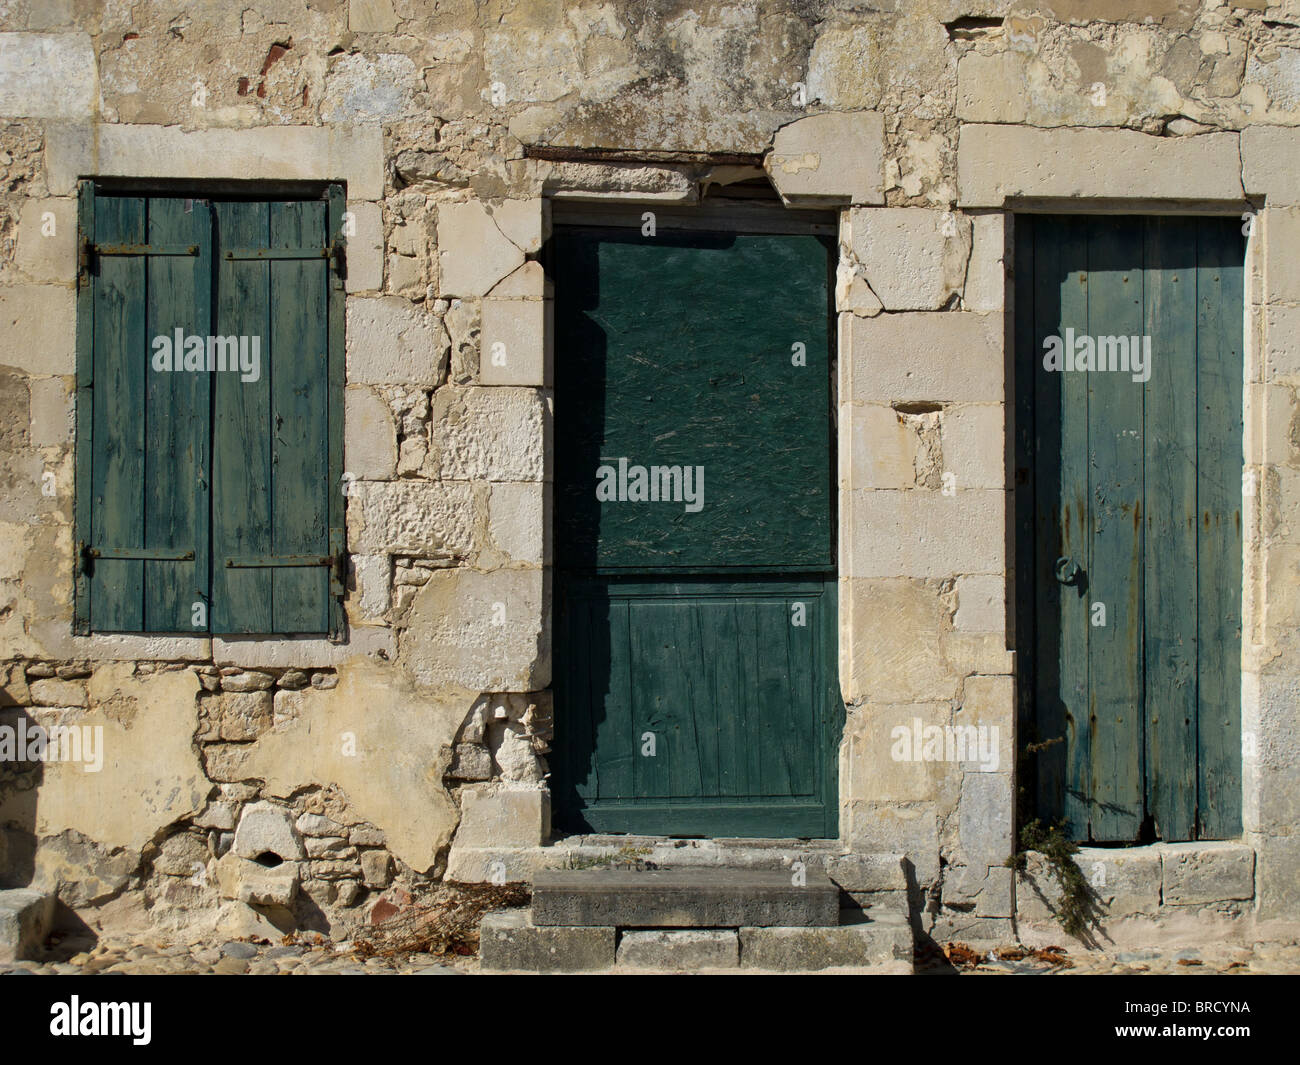 A disused house with closed shutters in St Martin de Re on the Ile de Re, France - Stock Image